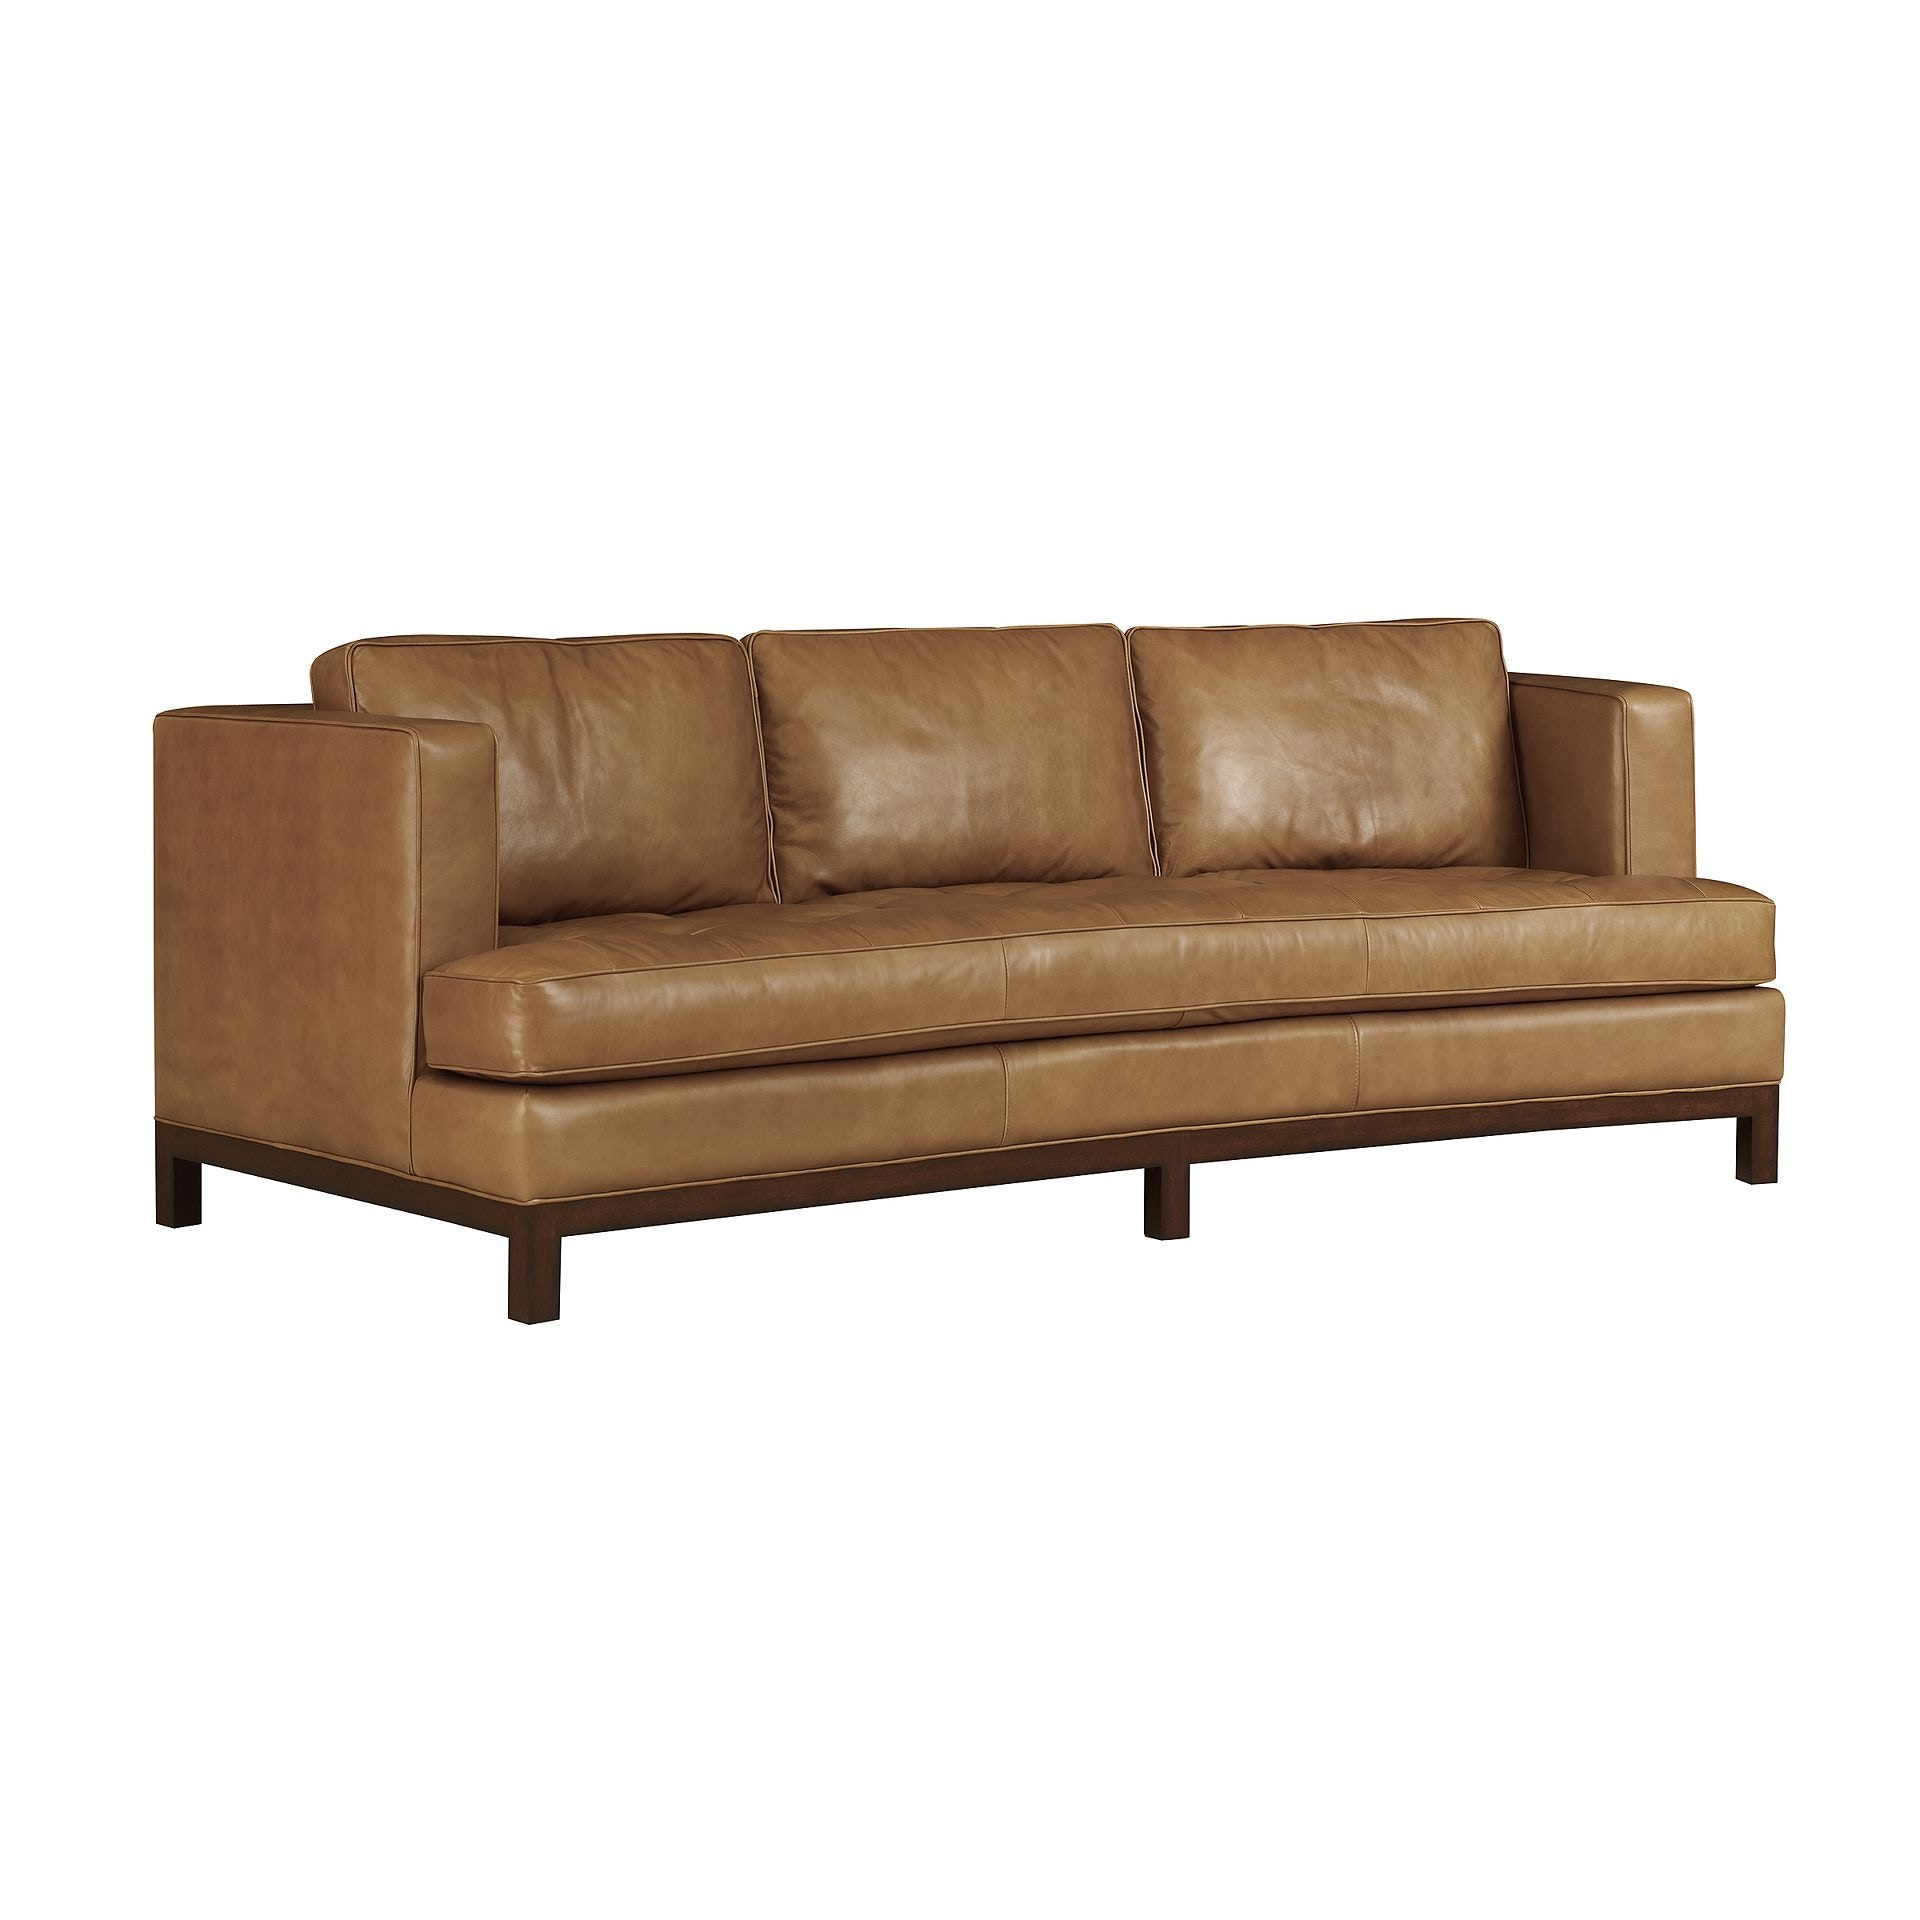 henredon sofa leather restoration sectional luxury furniture in san go orange